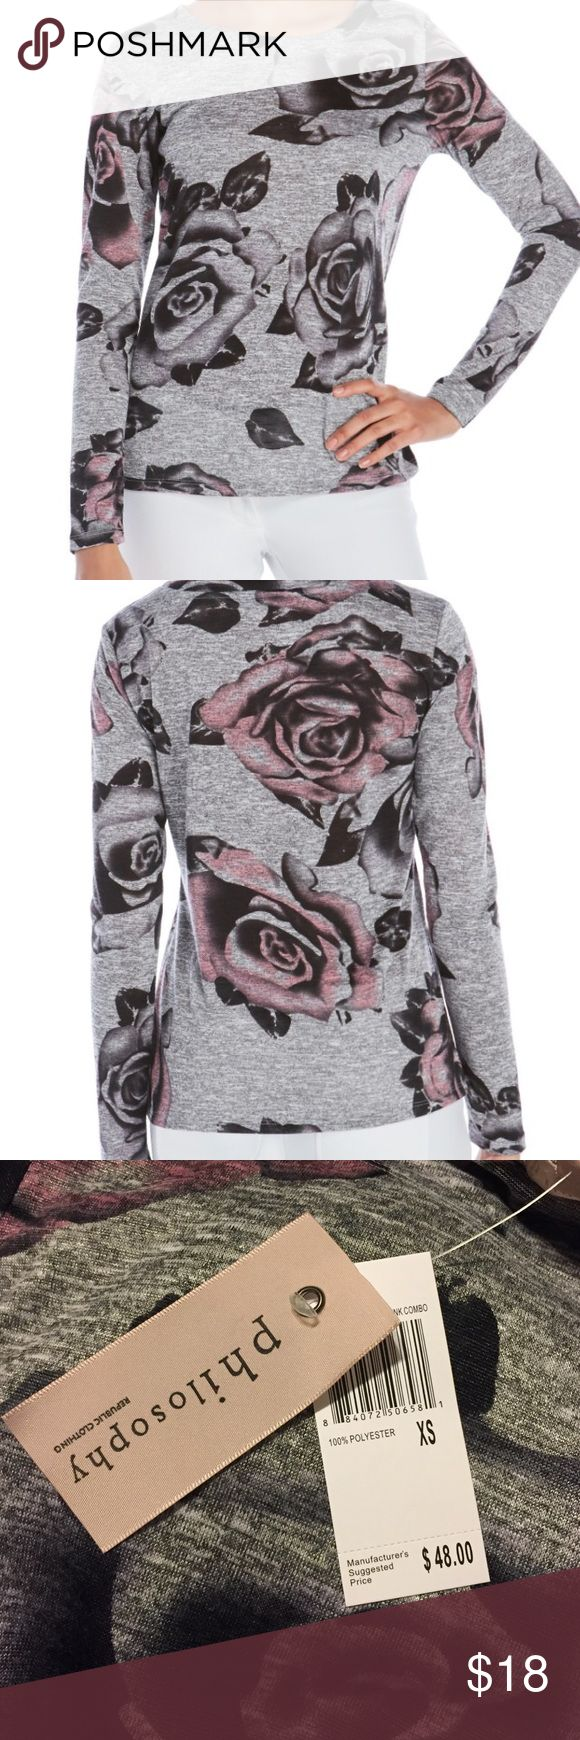 Philosophy Gray Floral Print Long Sleeve Top Brand new with tags. Bateau neck, long sleeves, allover print, knit construction, ribbed trim, 100% Polyester. Philosophy Tops Tees - Long Sleeve